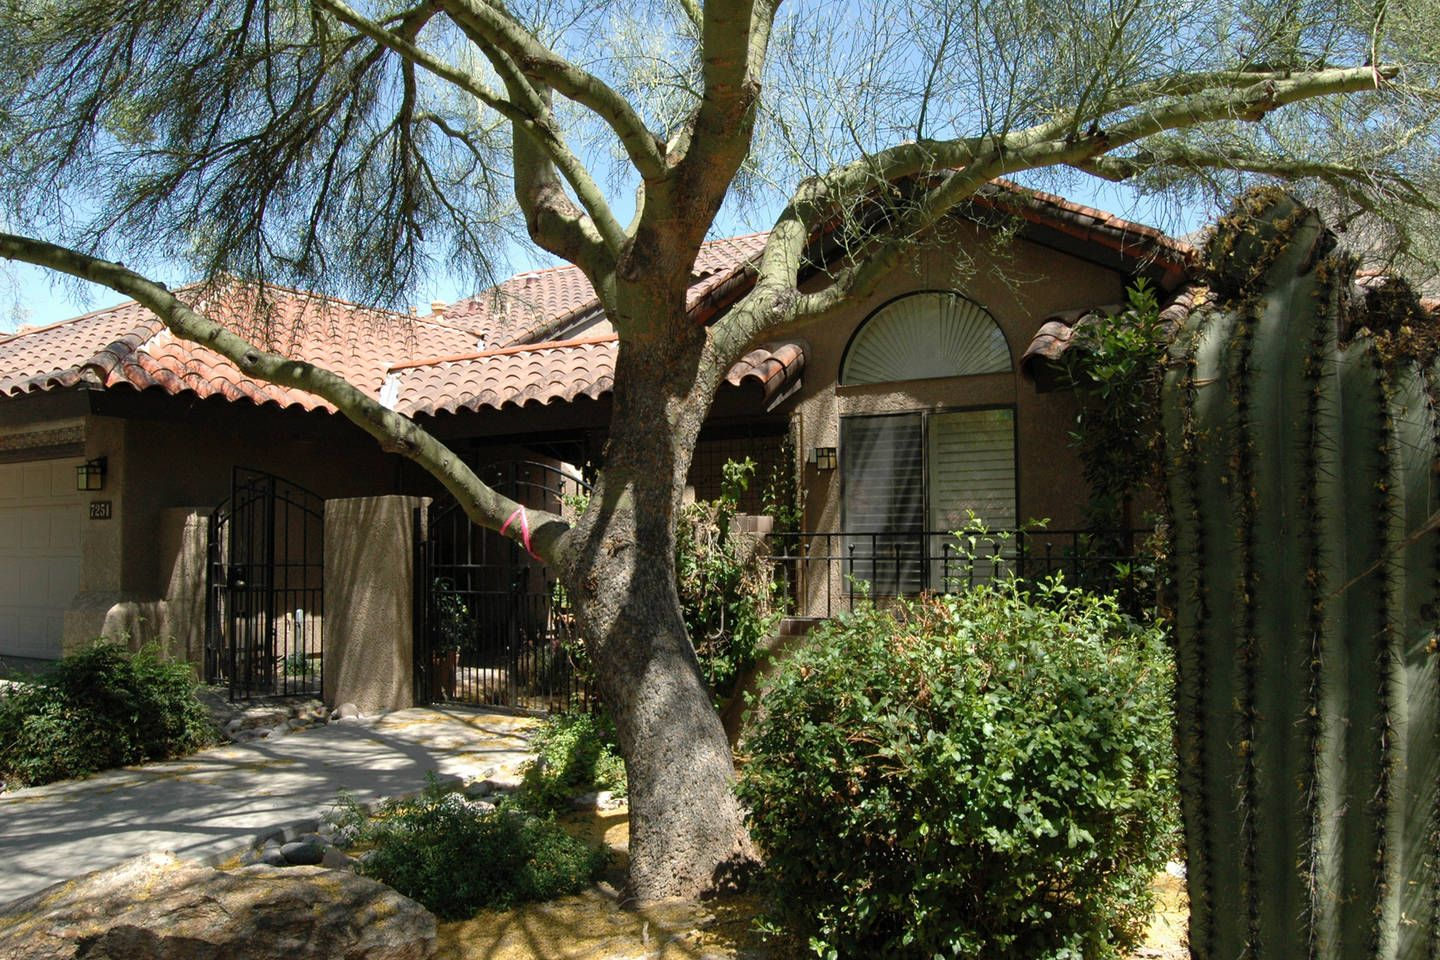 Townhouse, Ventana Canyon Golf Club vacation rental in